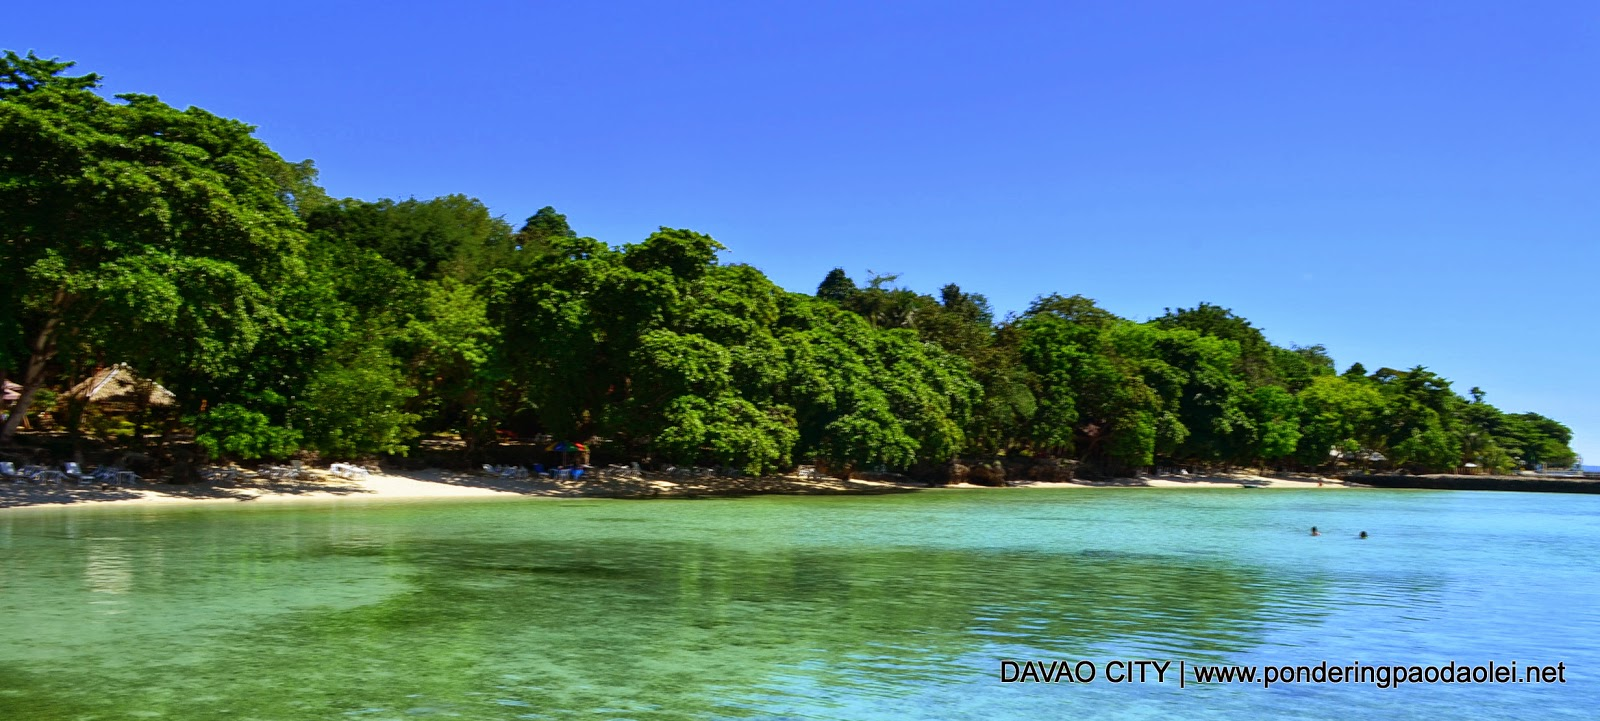 Davao: Life Is Indeed Here